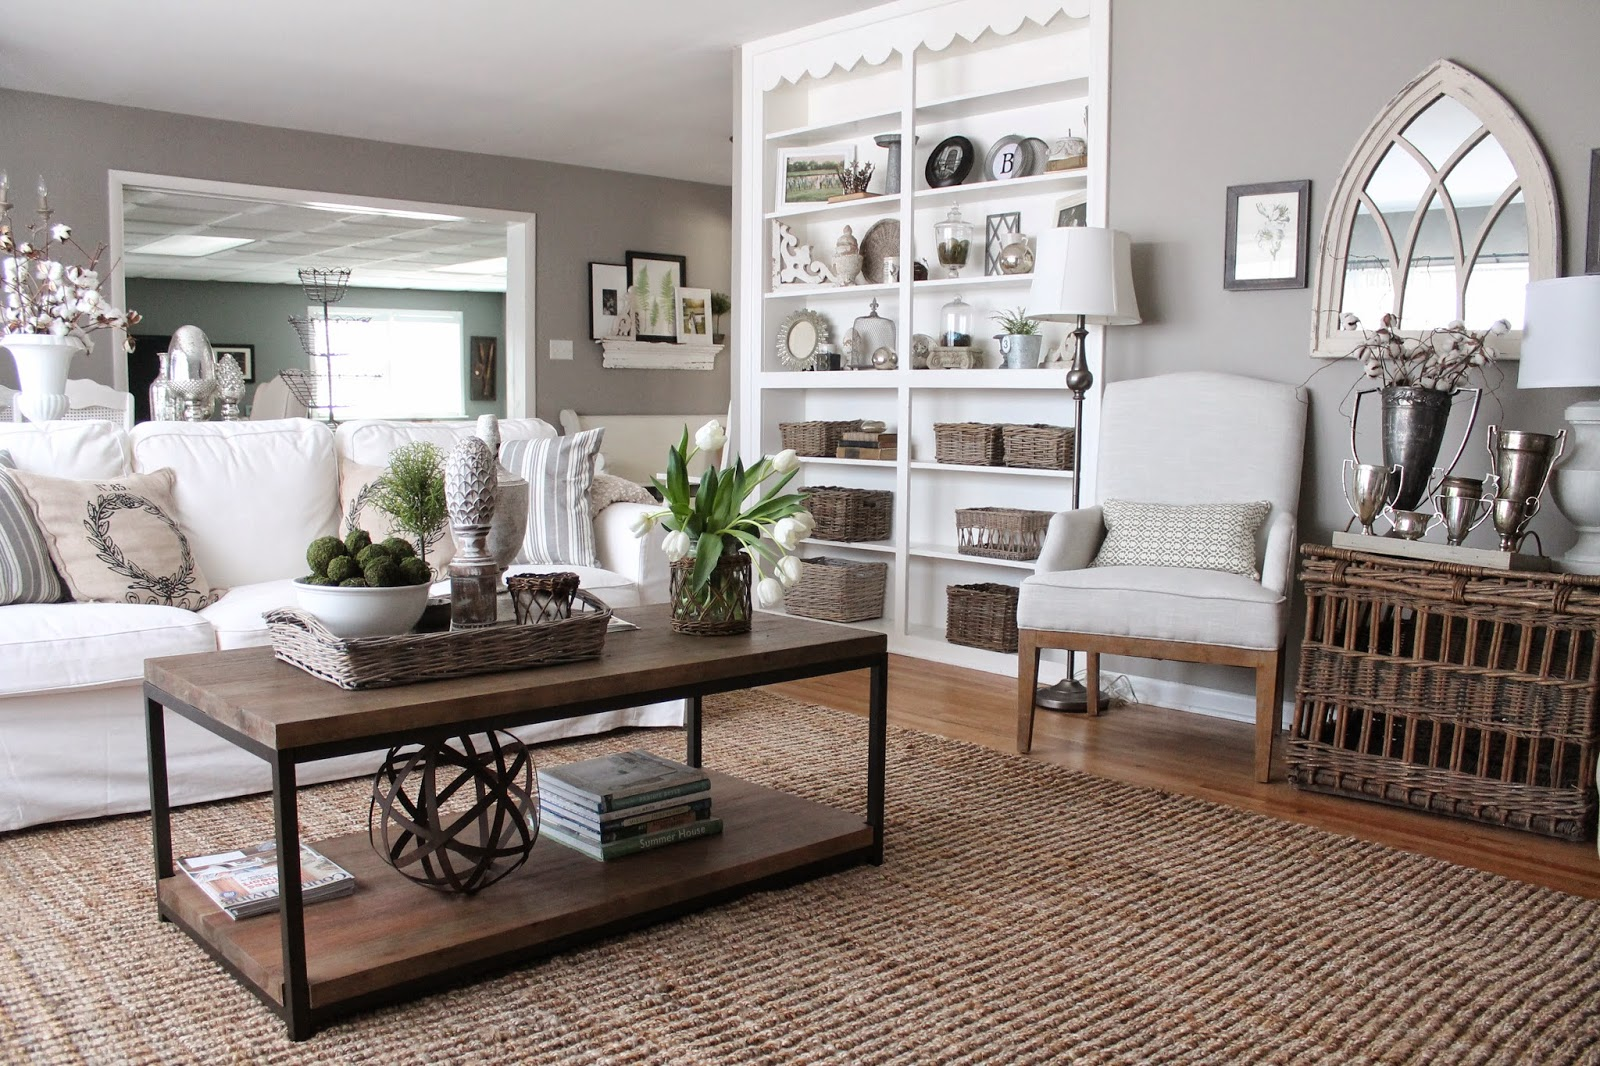 5 Easy Ways to Styling Your First Home - Fairborne Homes